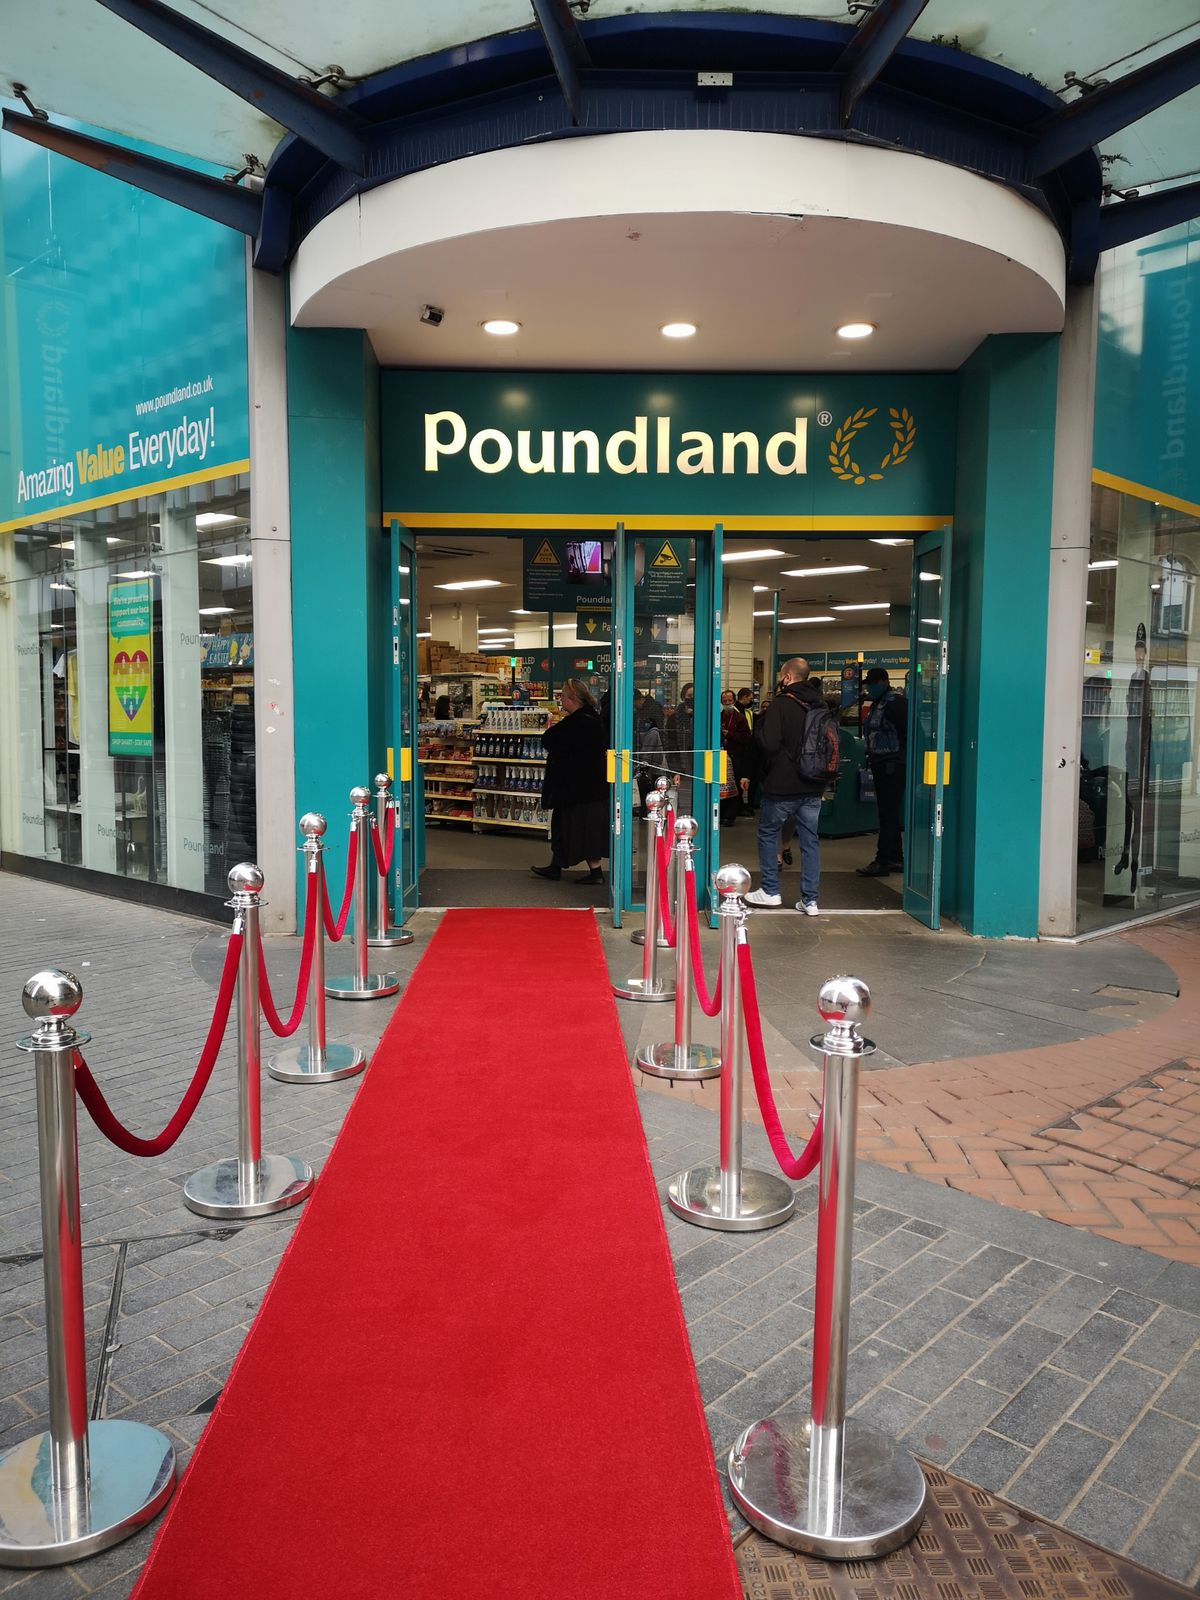 Poundland plans to rollout the red carpet for reopen hibernating stores